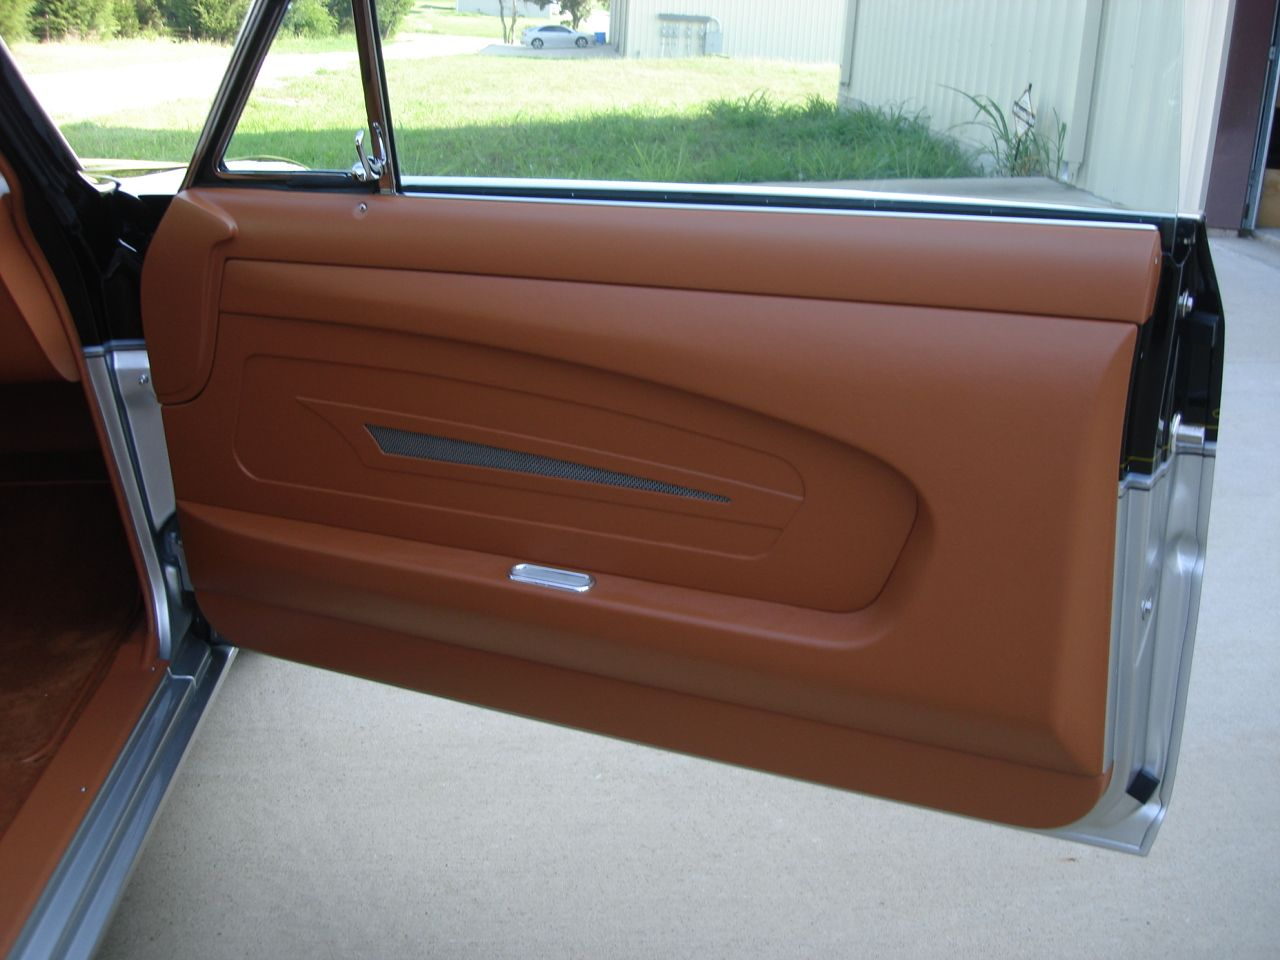 Thread RPL Customs 66 Nova door panels interior & Thread: RPL Customs 66 Nova door panels interior | Auto Addiction ...